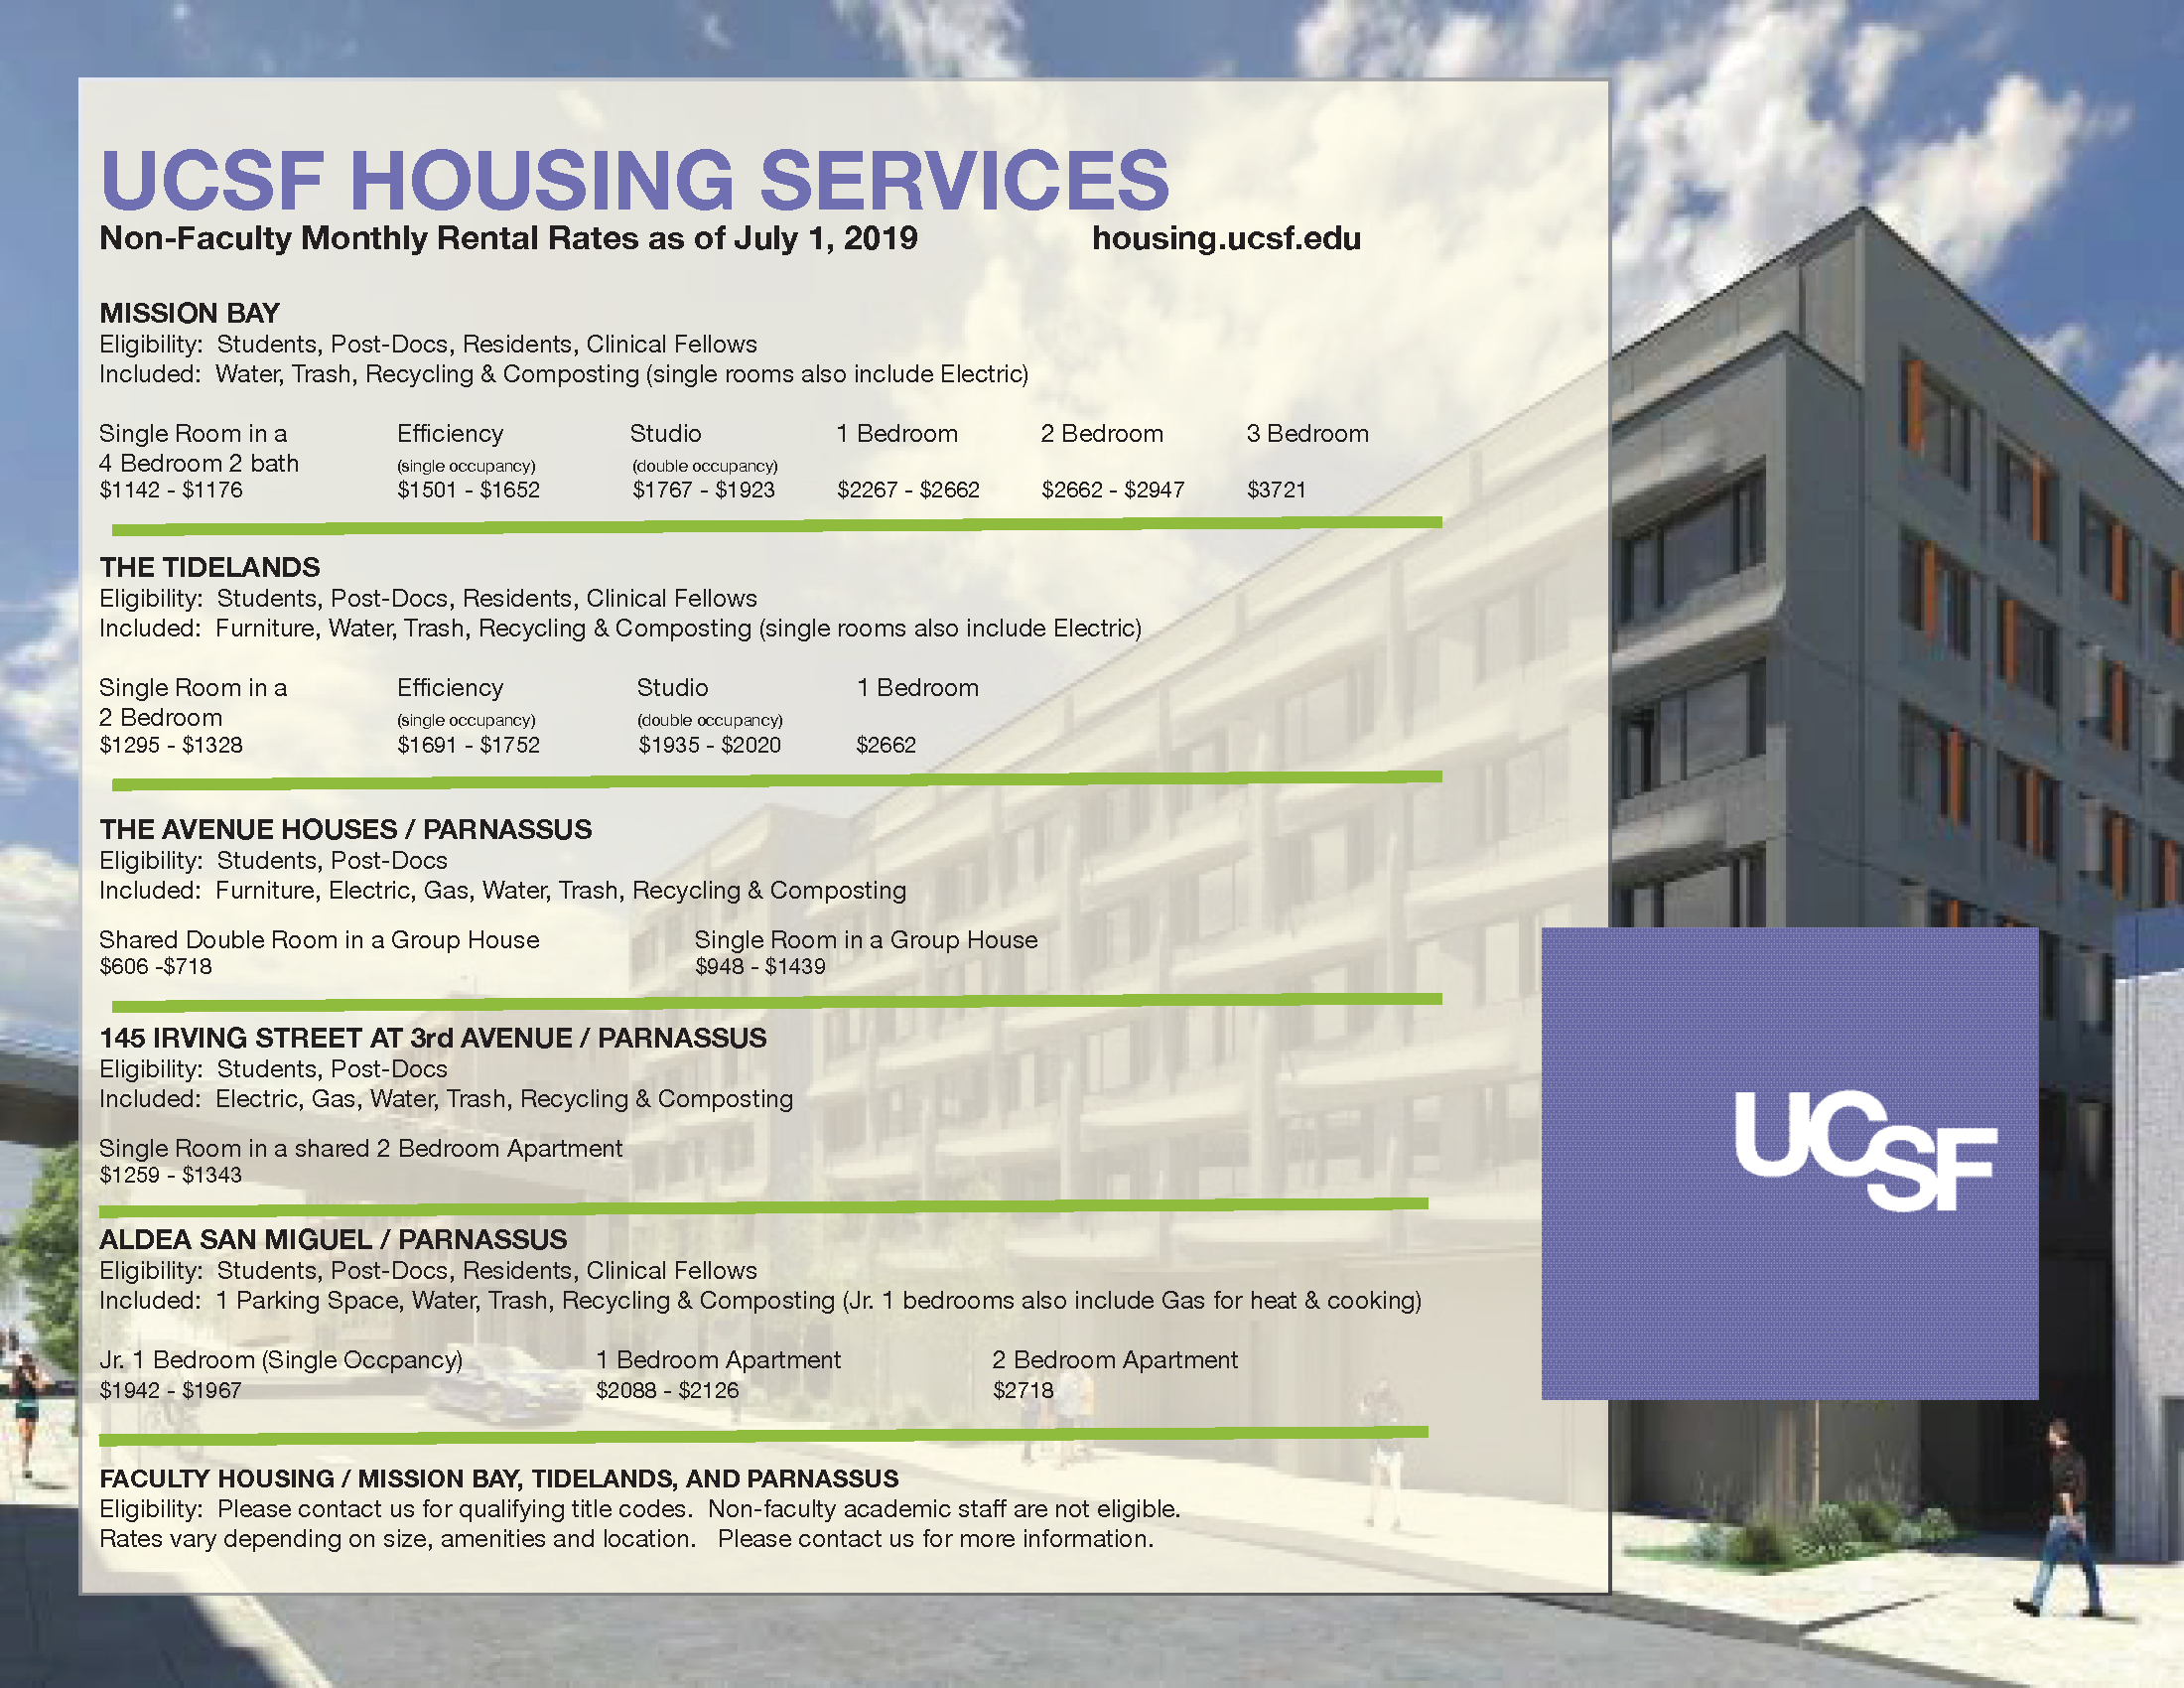 rental rates for 2019-20